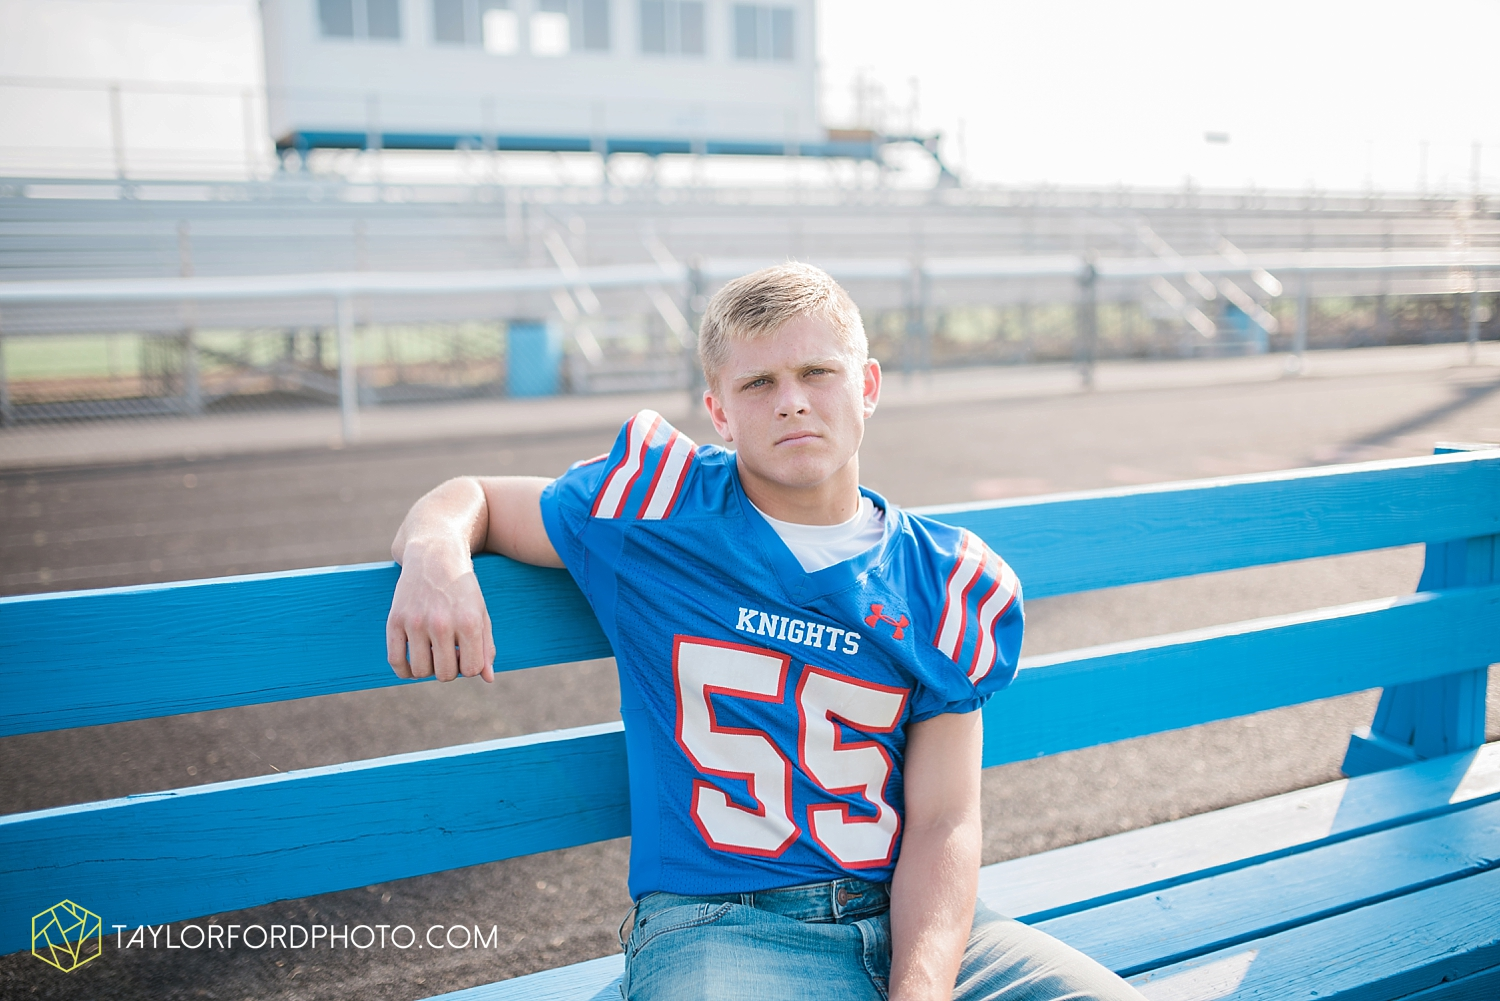 van_wert_ohio_senior_photographer_taylor_ford_crestview_knights_fort_wayne_indiana_2742.jpg